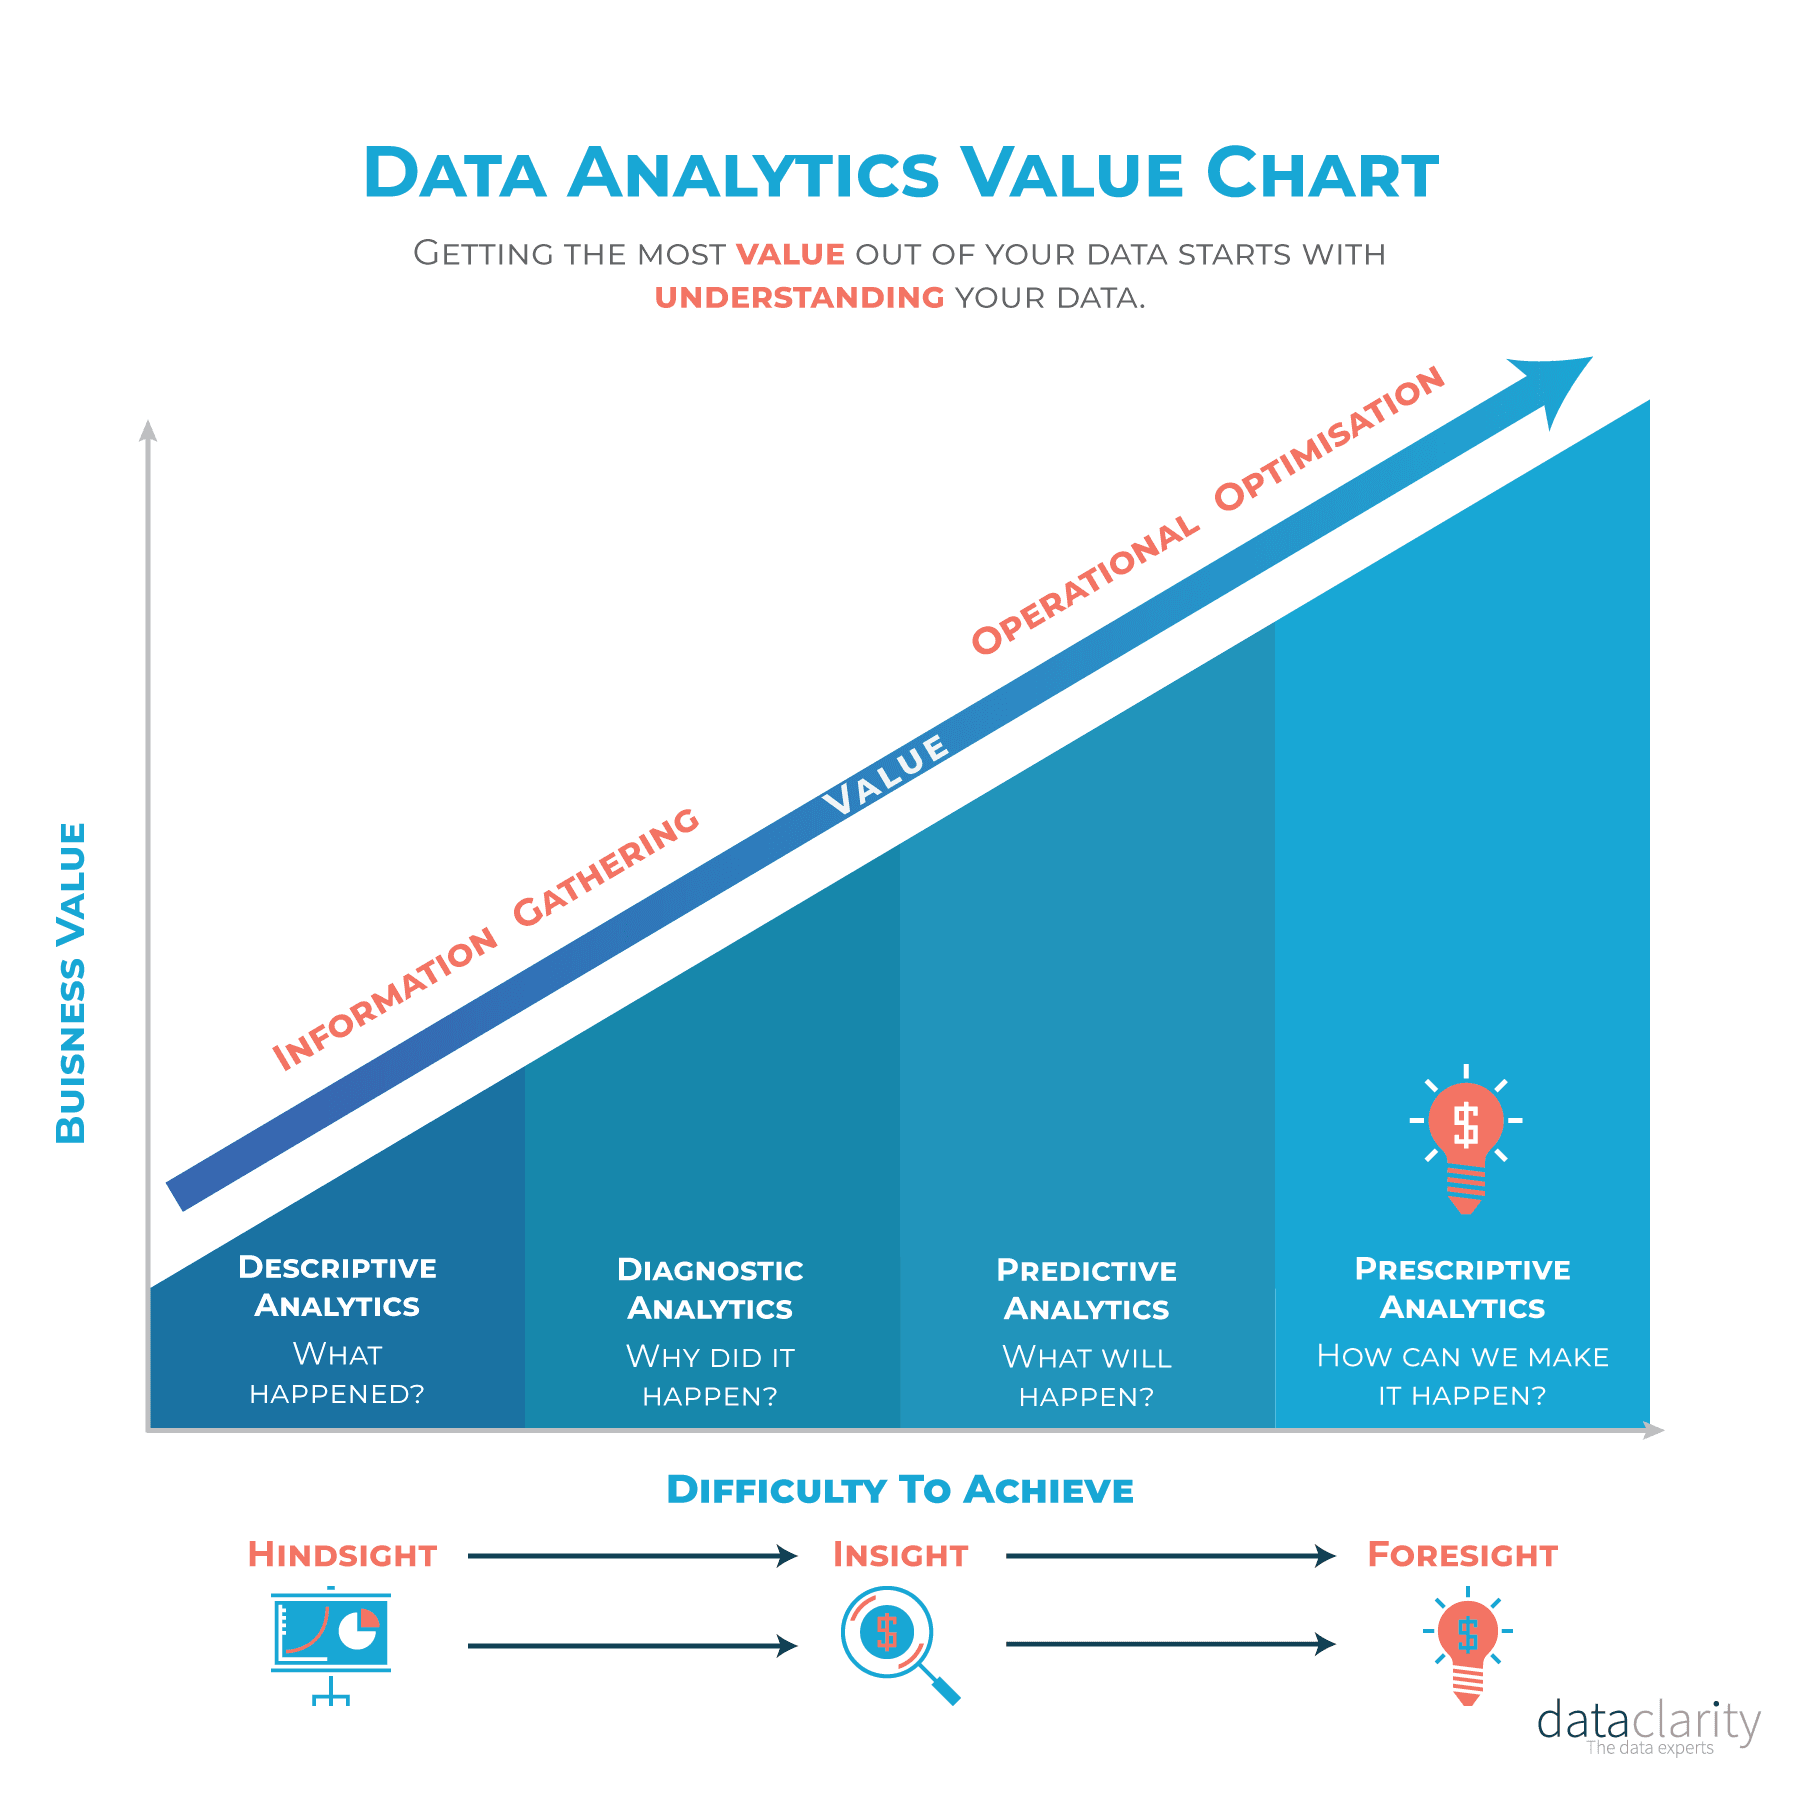 Data Analytics Sophistication Value Chart